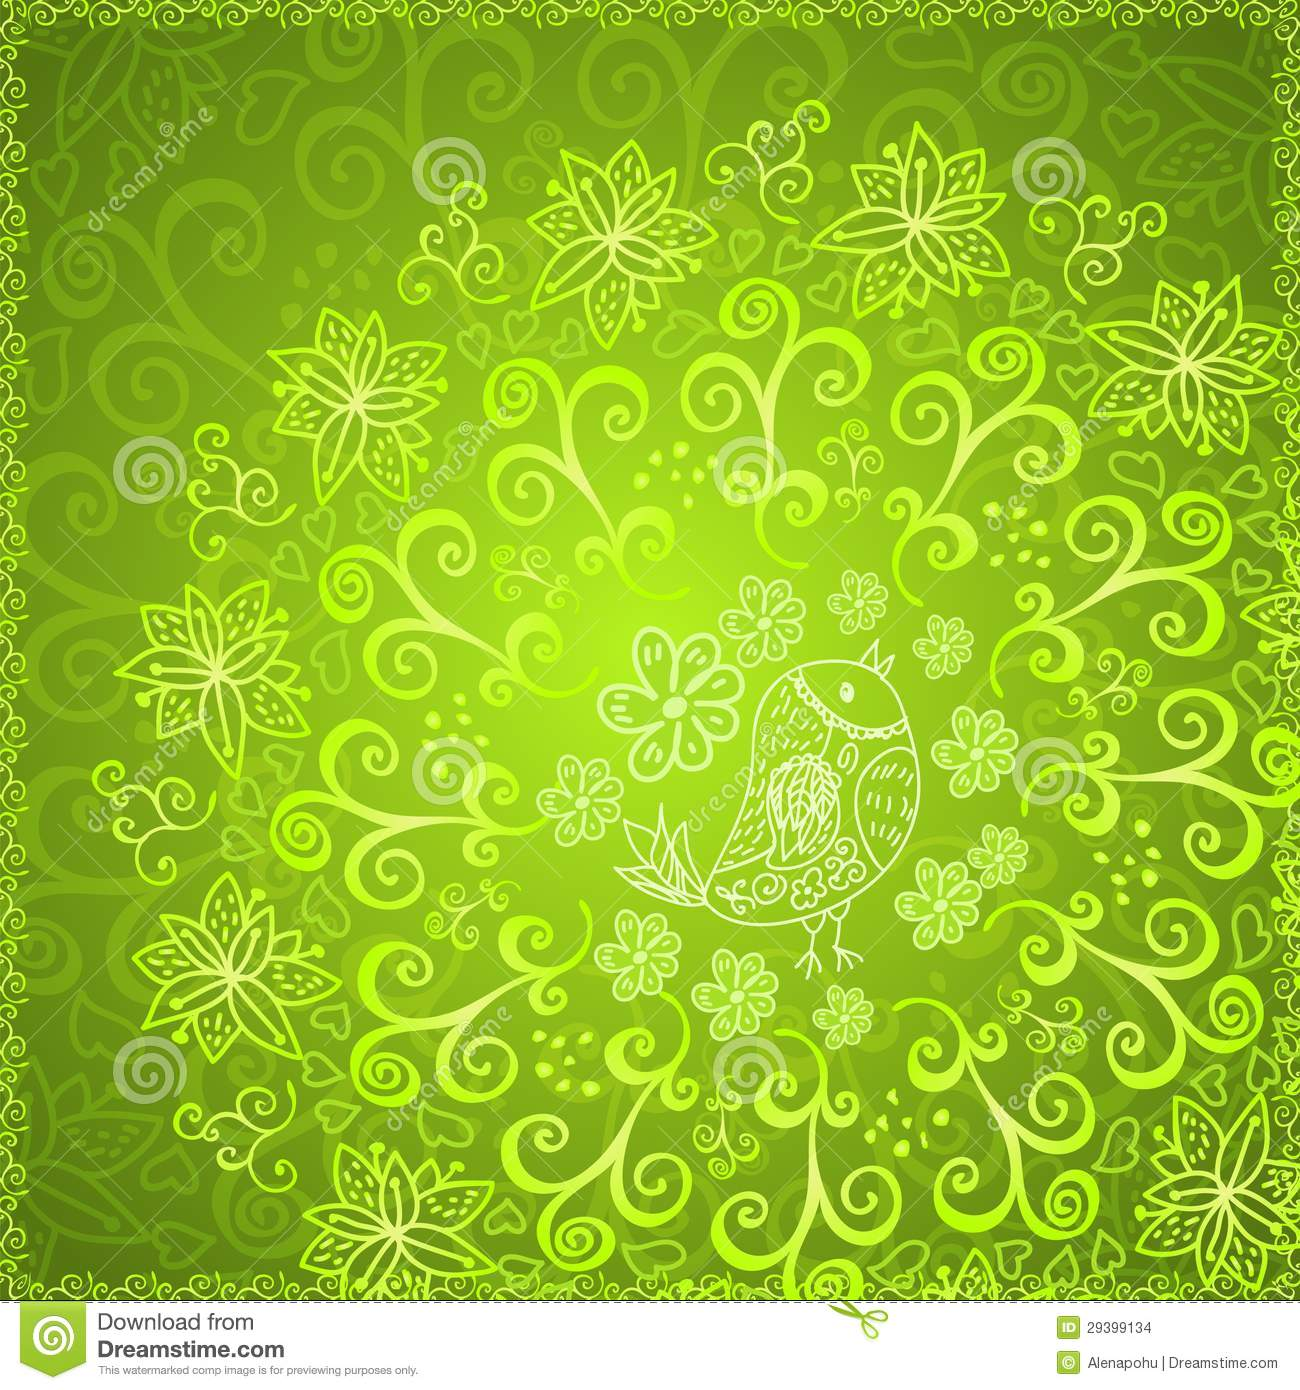 green abstract floral ornament background illustration 29399134 megapixl megapixl